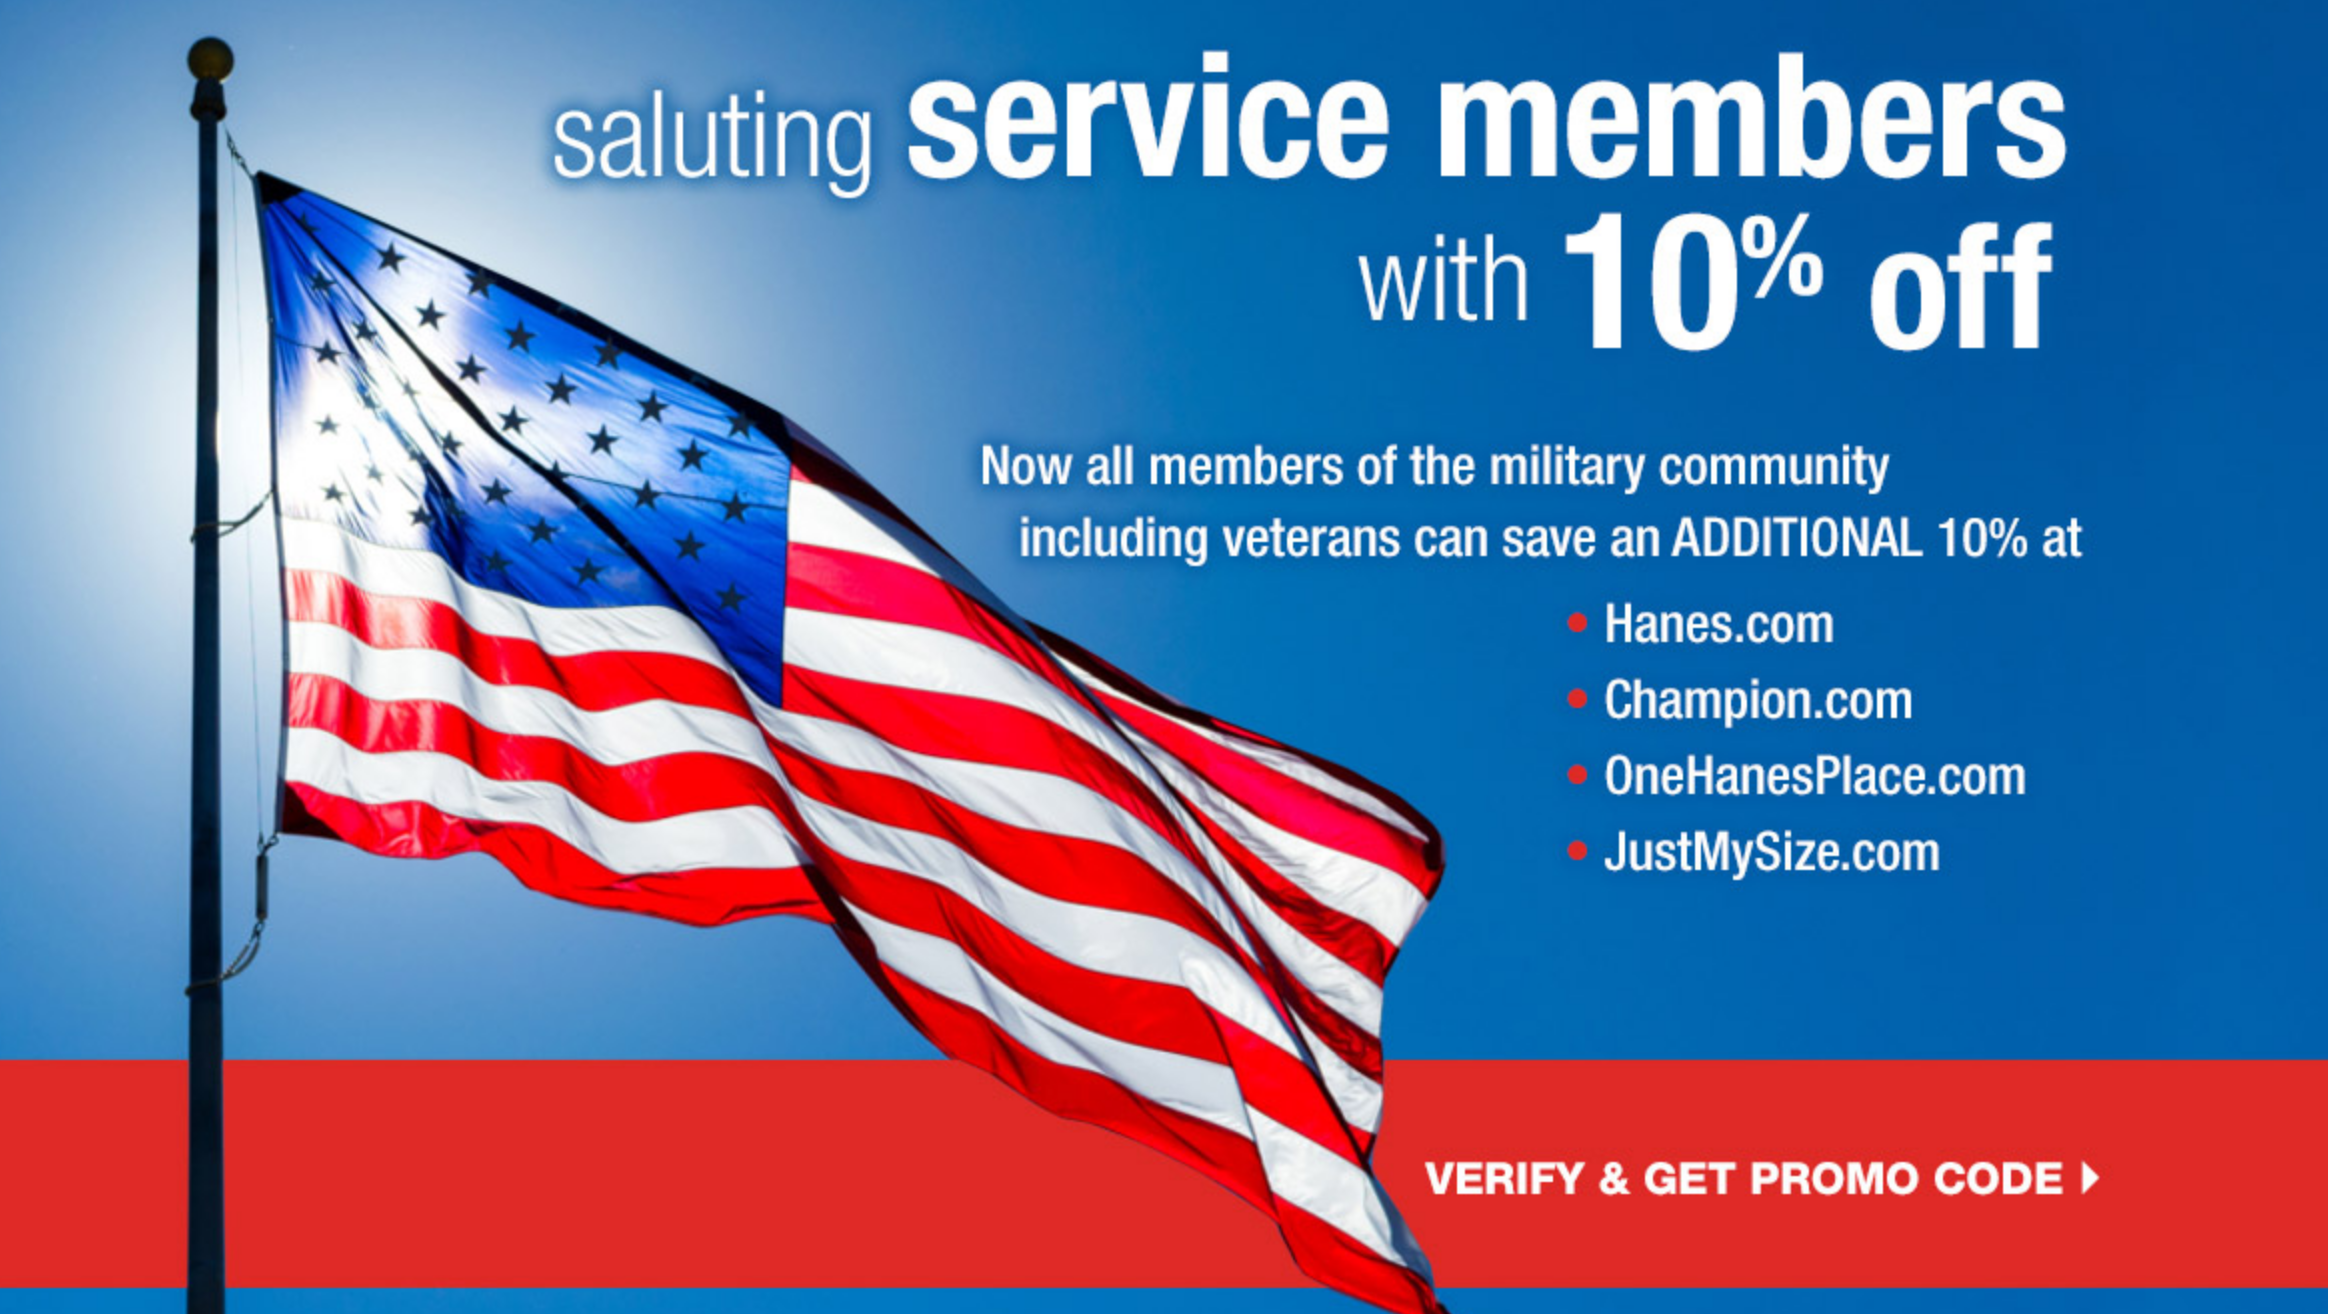 Just My Size Military Veteran Discounts